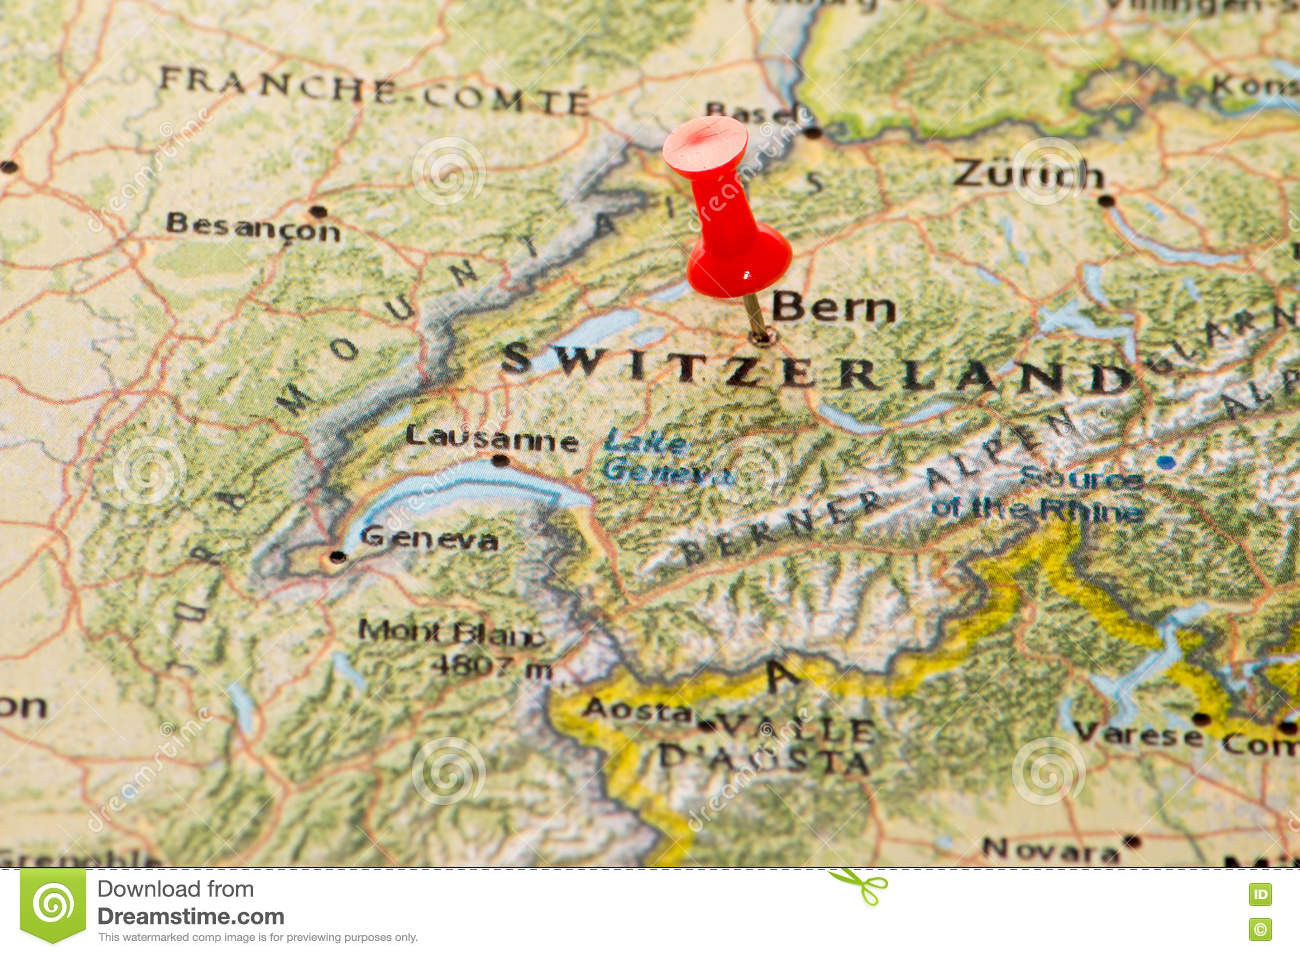 Bern, Switzerland Pinned On A Map Of Europe Stock Photo - Image of ...